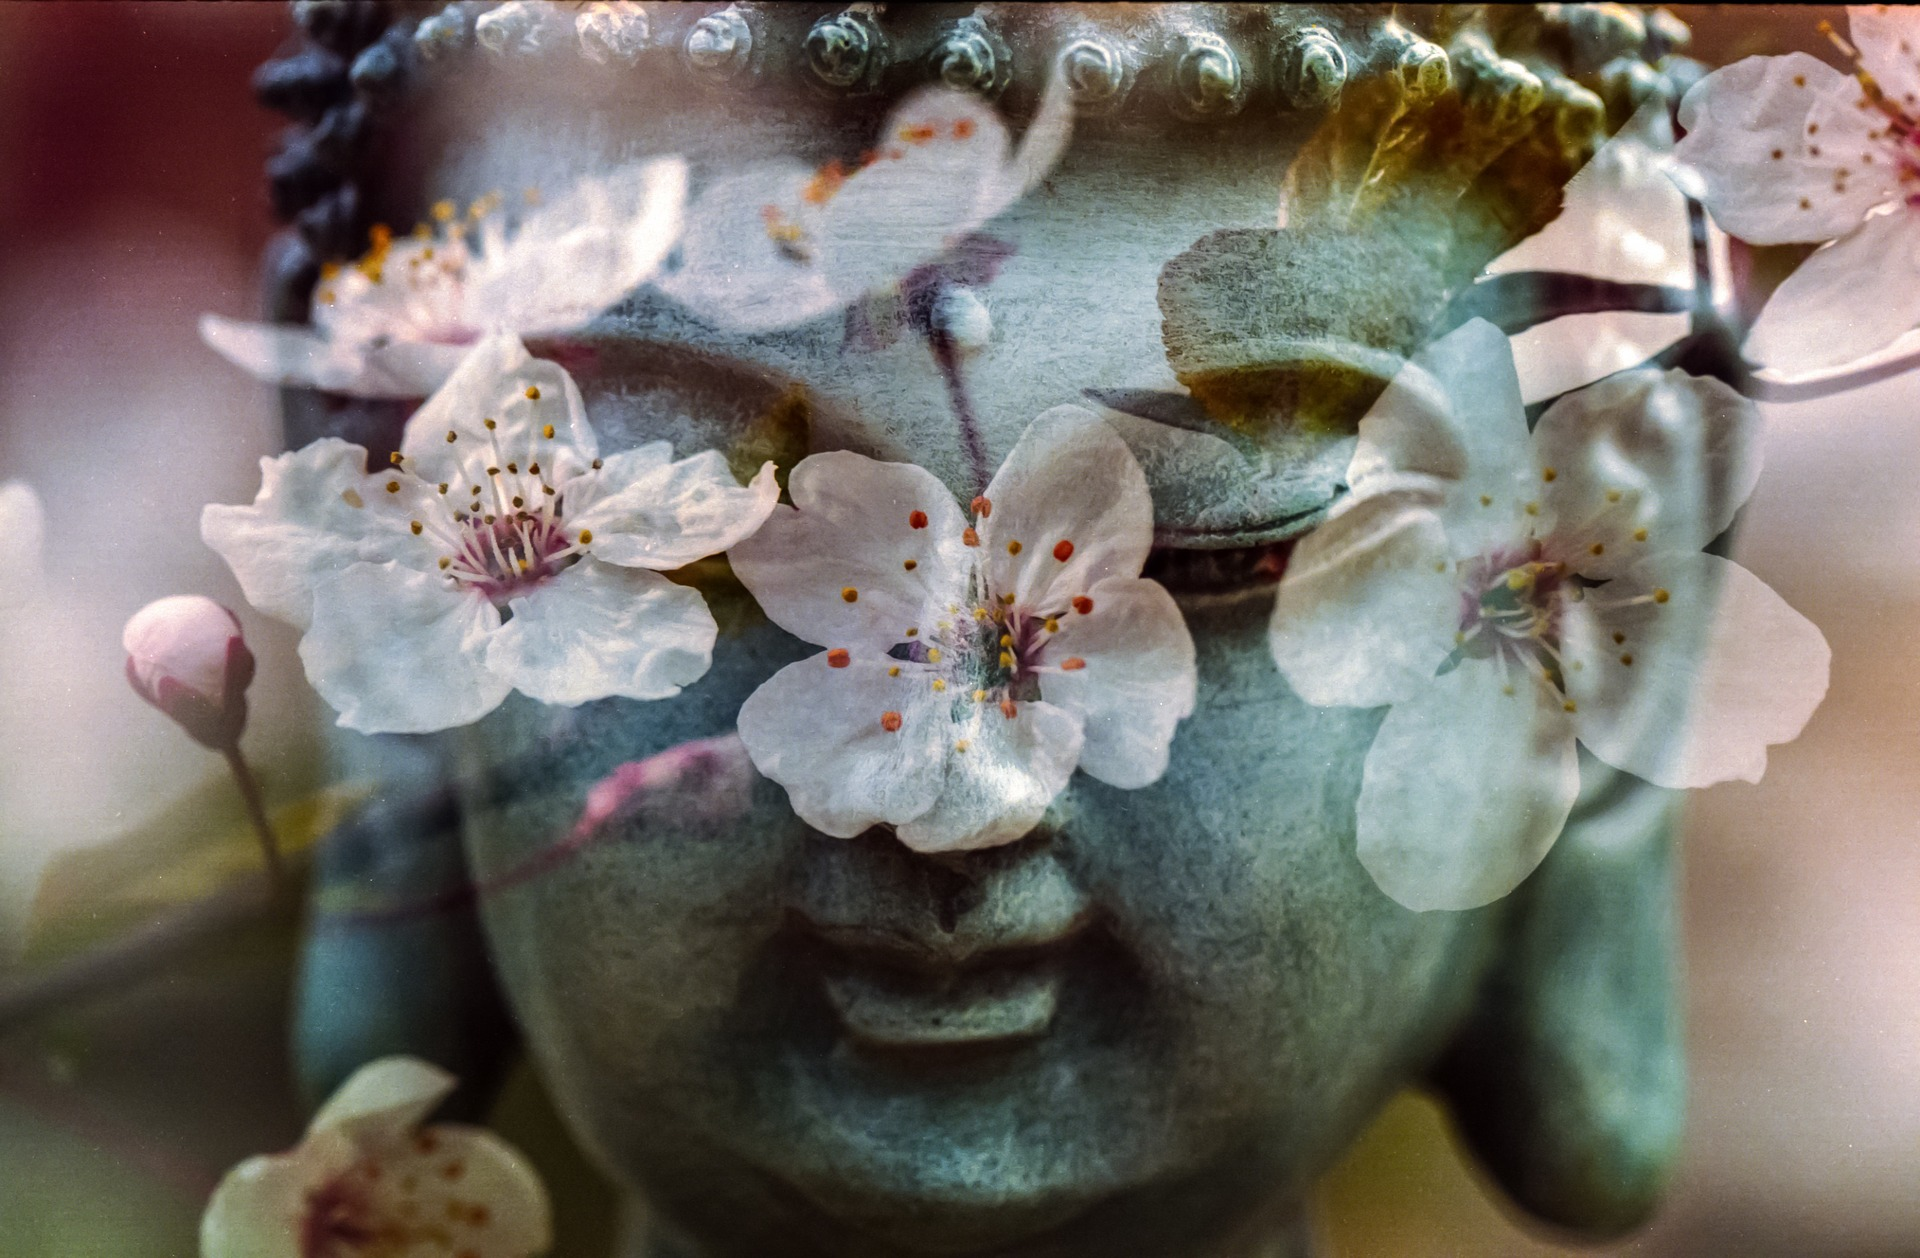 A buddha head statue superimposed by delicate flowers